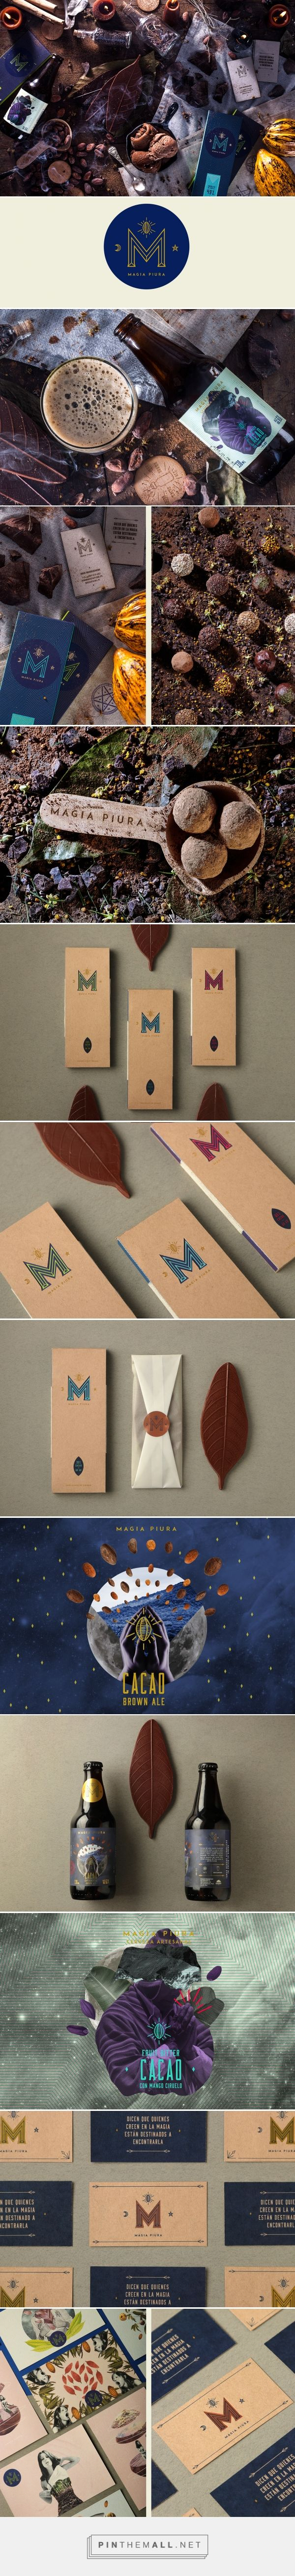 Magia Piura Chocolate Branding and Packaging by Alejandro Gavancho | Fivestar Branding Agency – Design and Branding Agency & Curated Inspiration Gallery